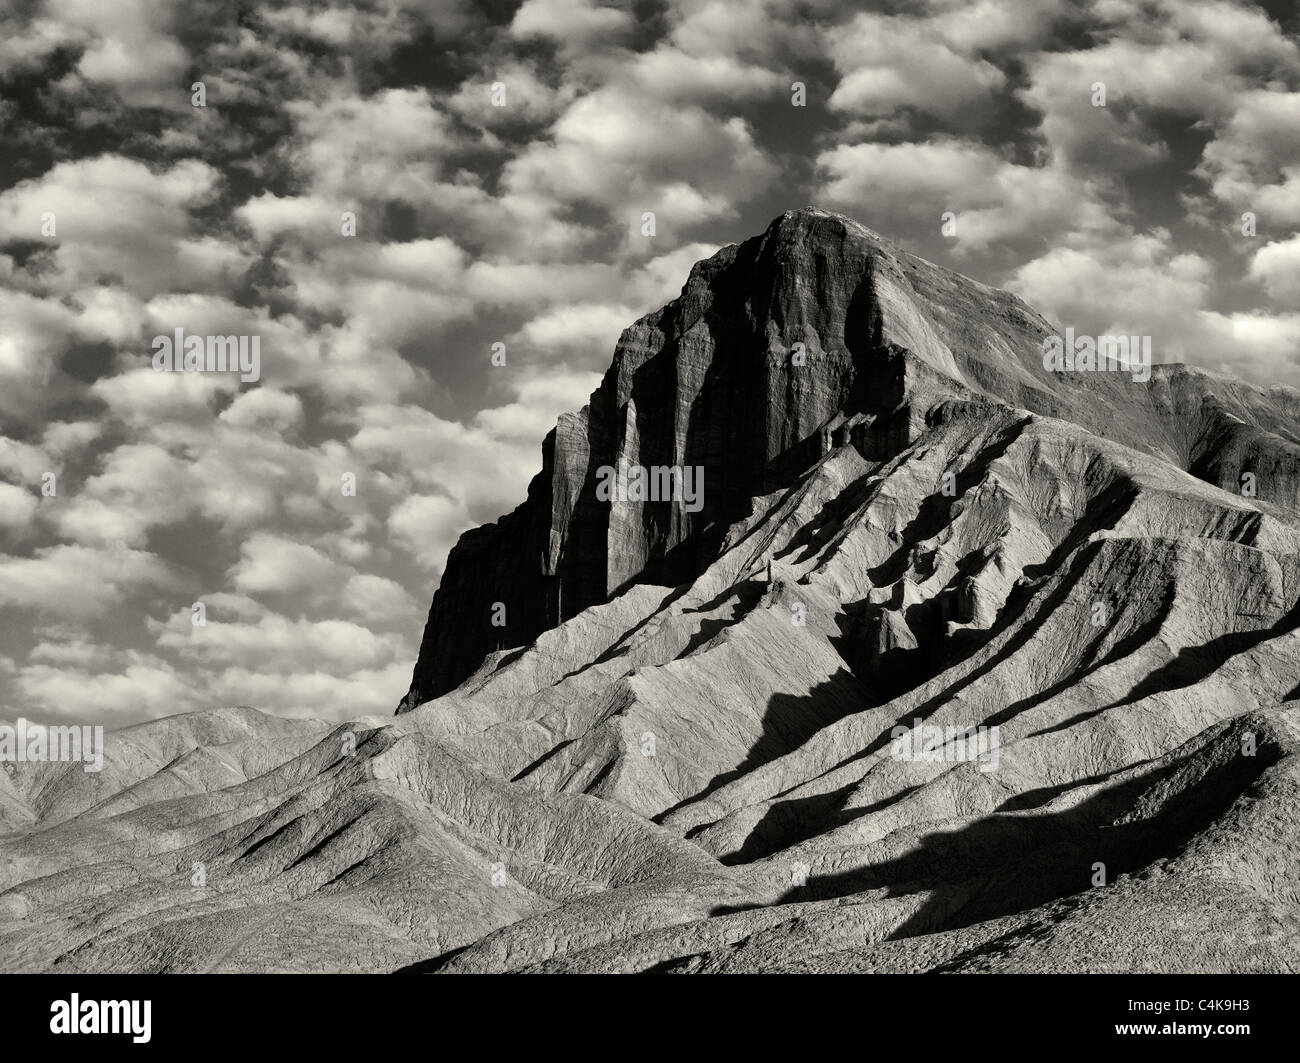 Manly peak as seen from Golden Canyon Trail. Death Valley National Park, California. Sky has been added. - Stock Image